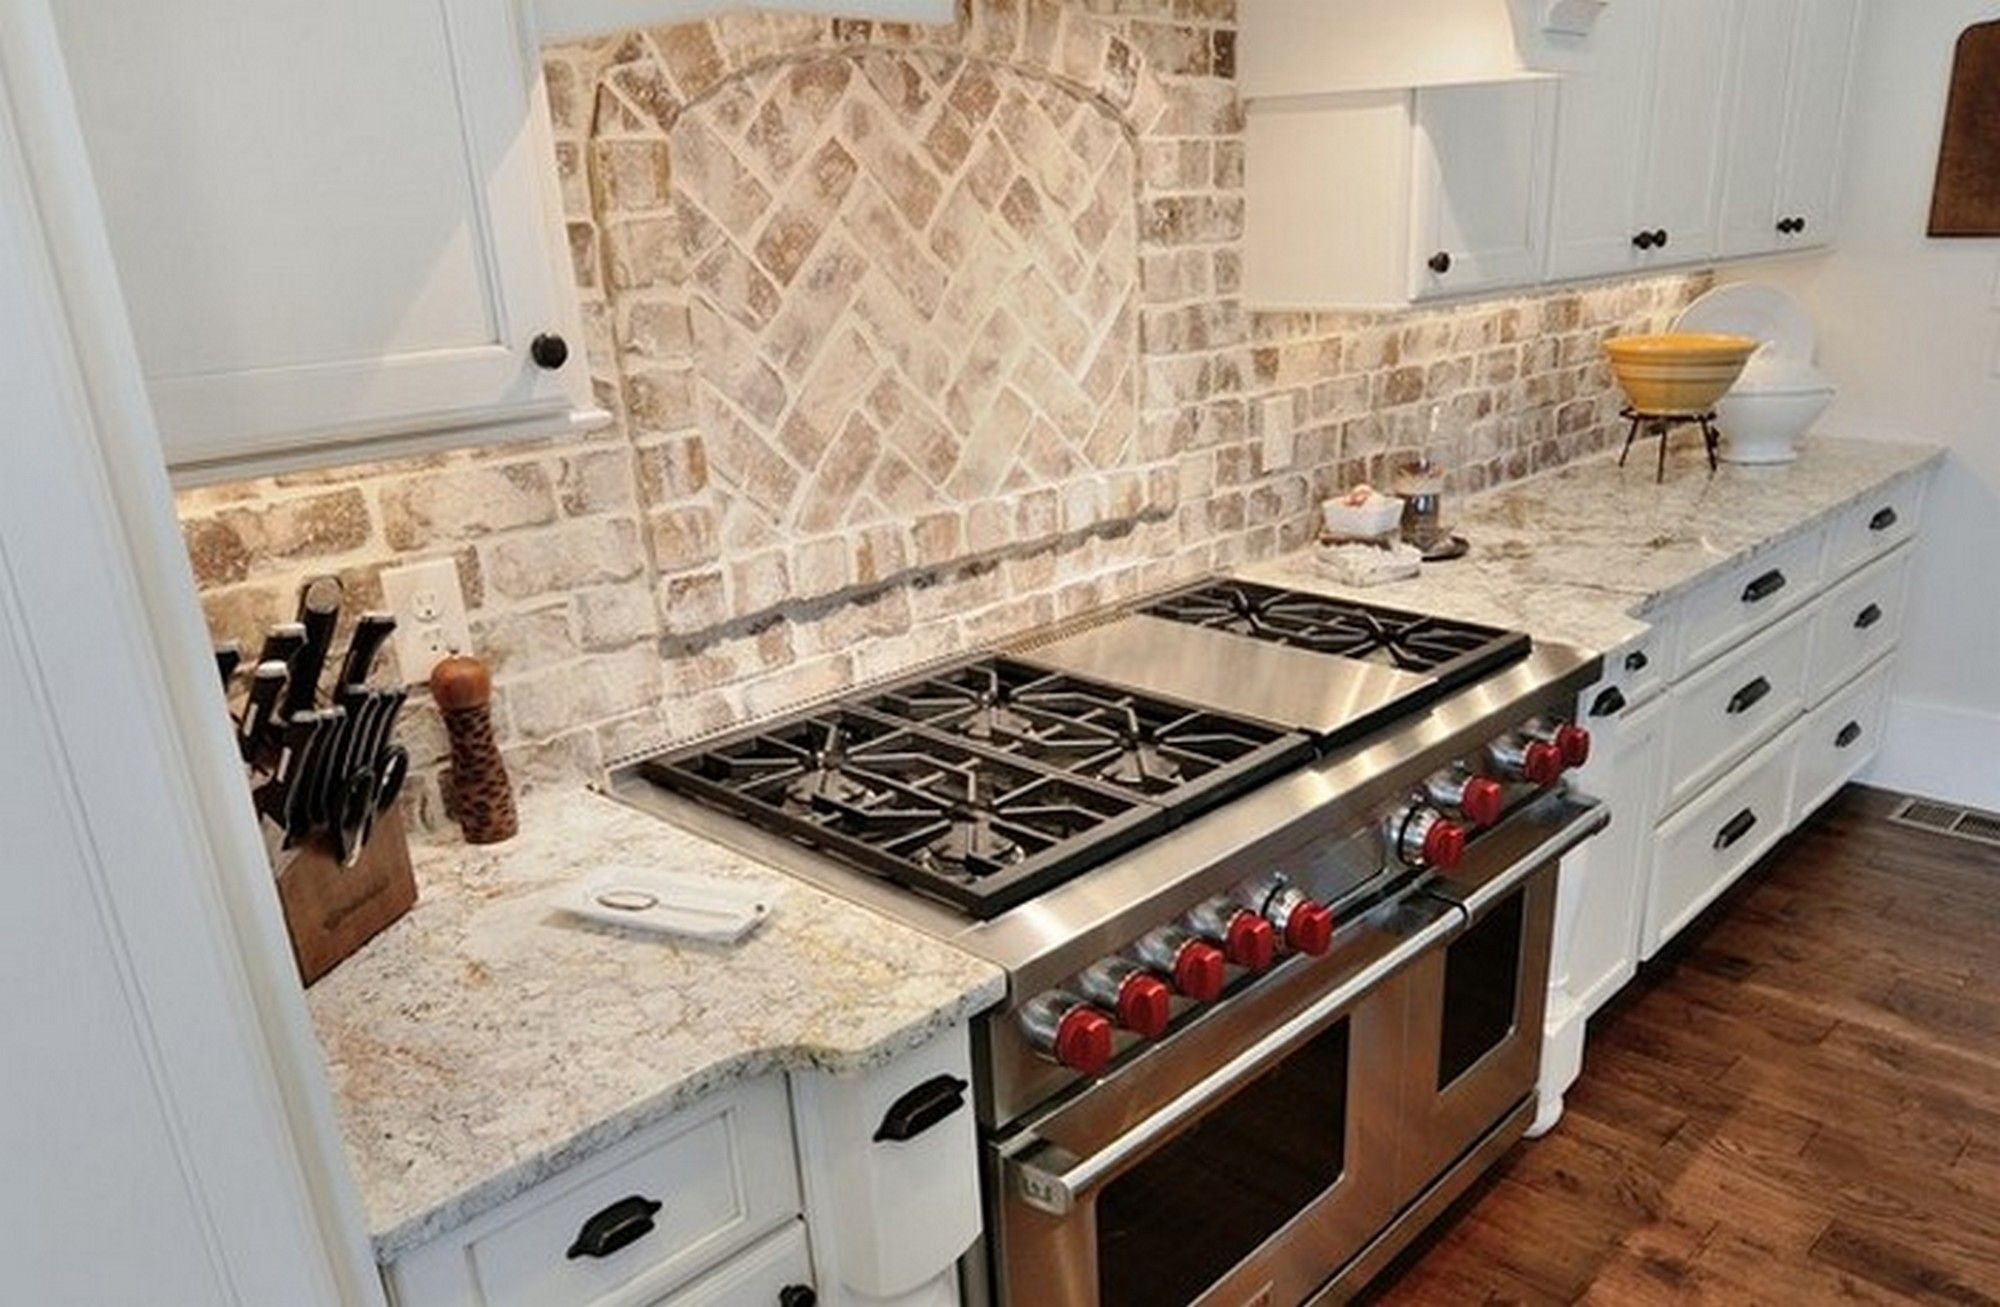 white springs granite with backsplash | Brick Backsplash ... on Backsplash Ideas For White Cabinets And Granite Countertops  id=52673